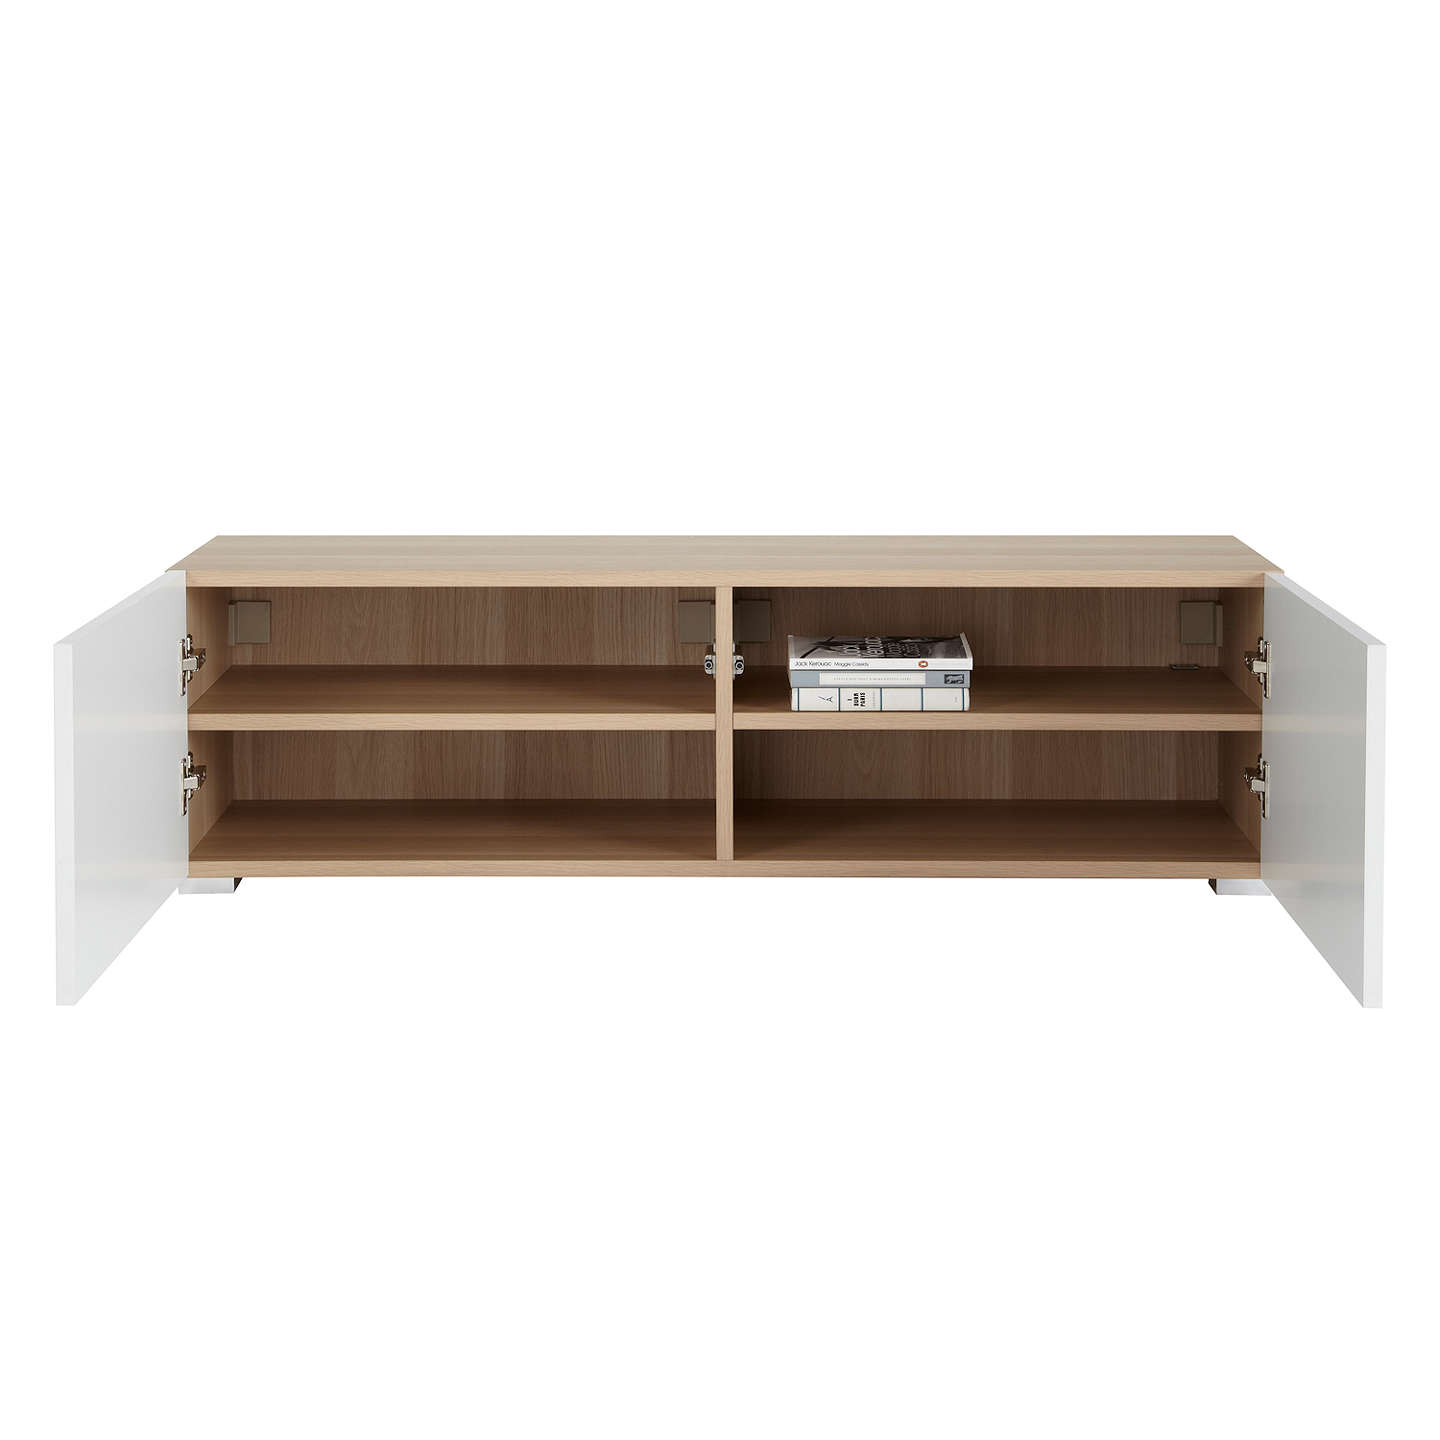 BuyHouse by John Lewis Mix it Match Low Storage Unit, Oak/White Online at johnlewis.com